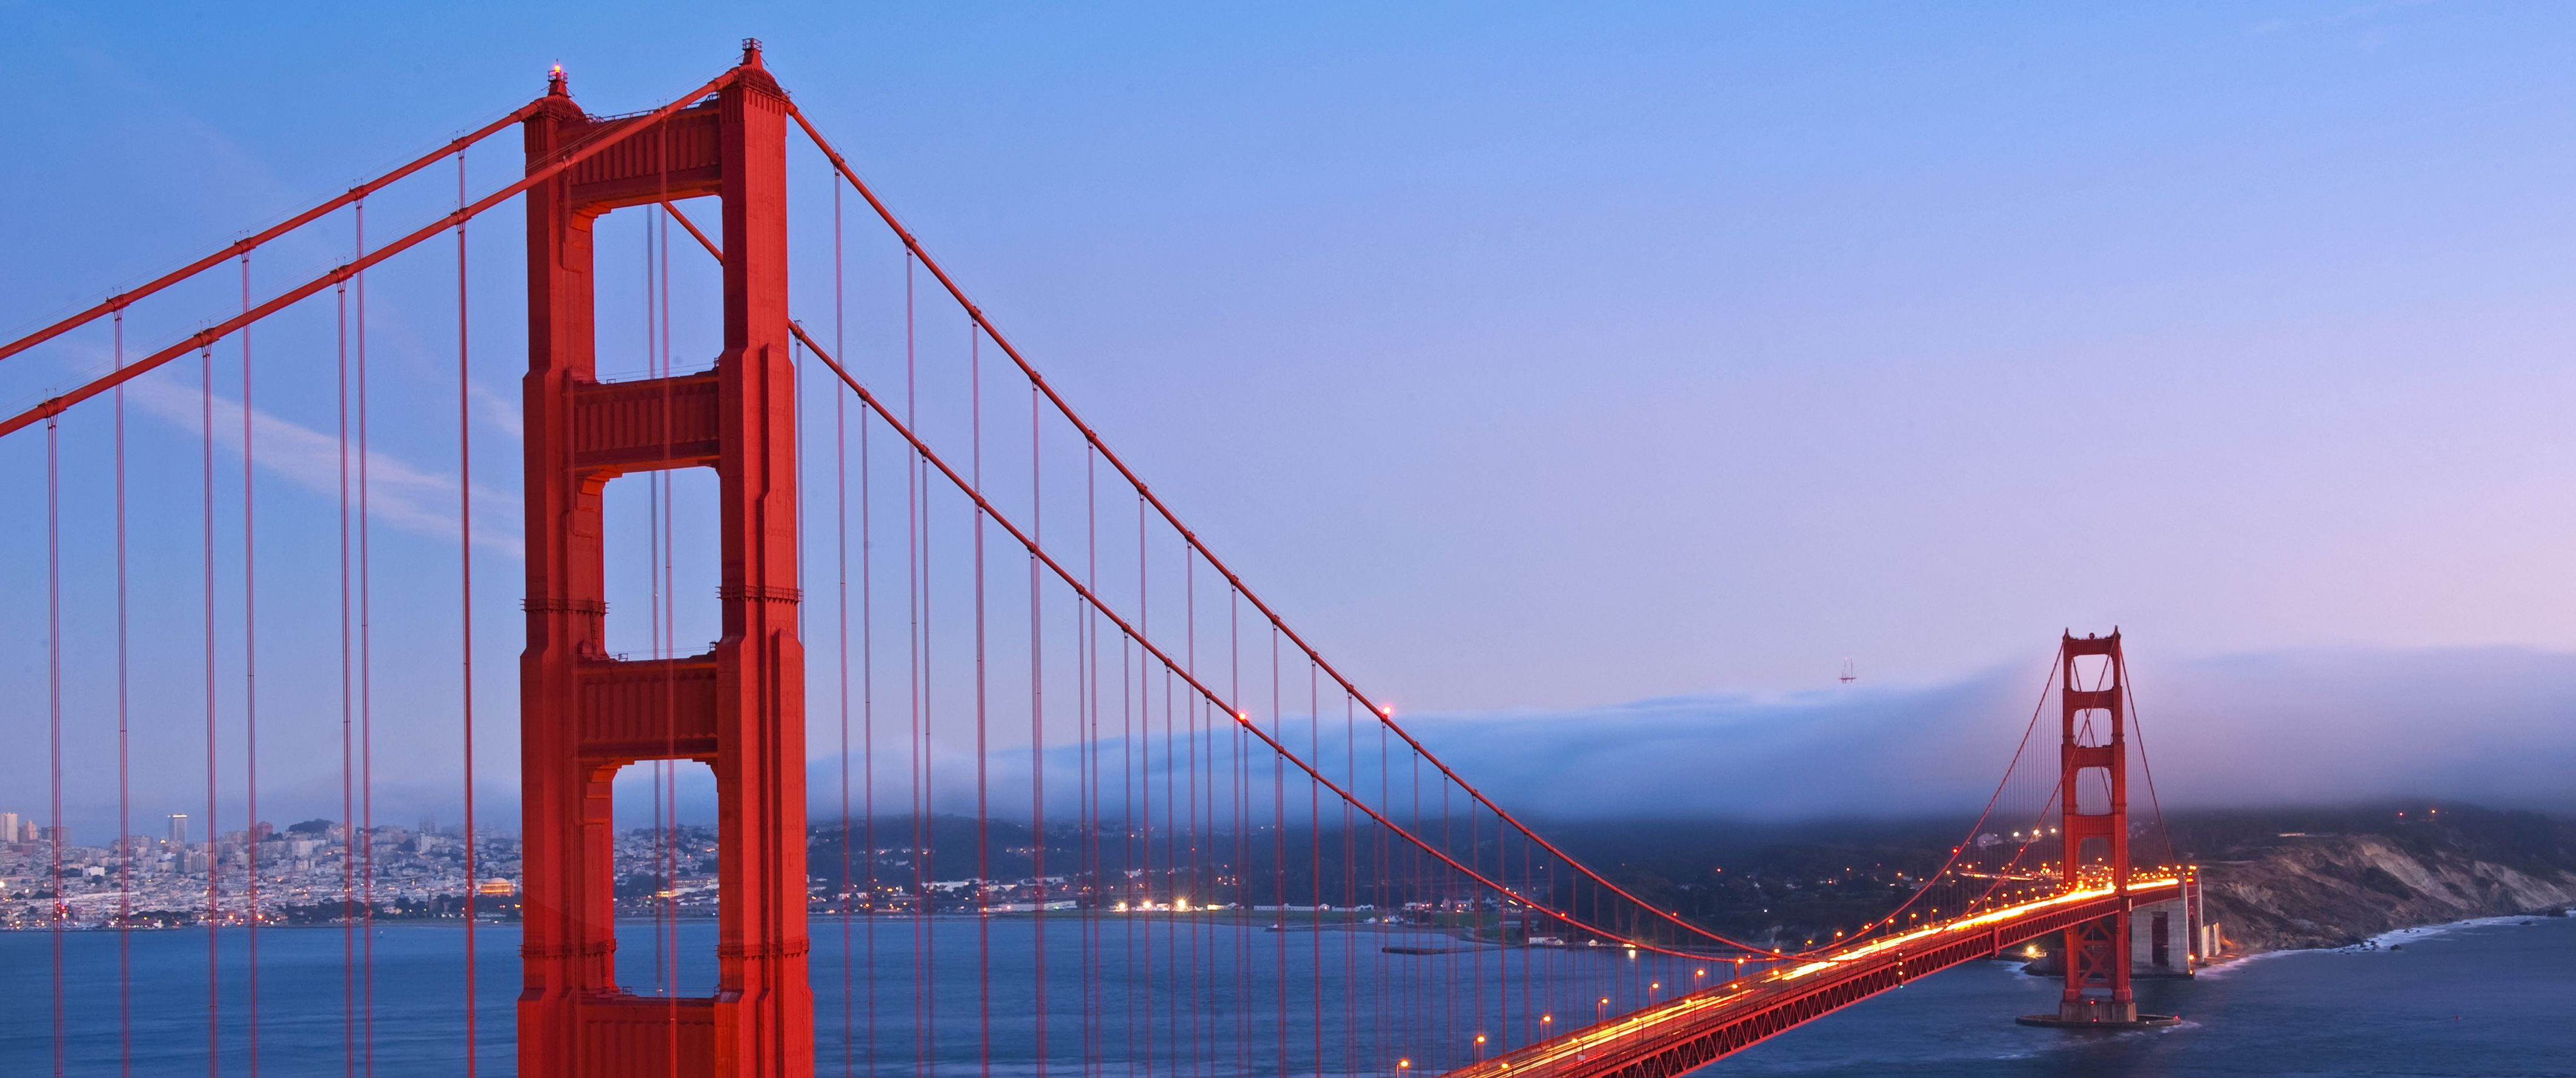 Abendstimmung an der Golden Gate Bridge